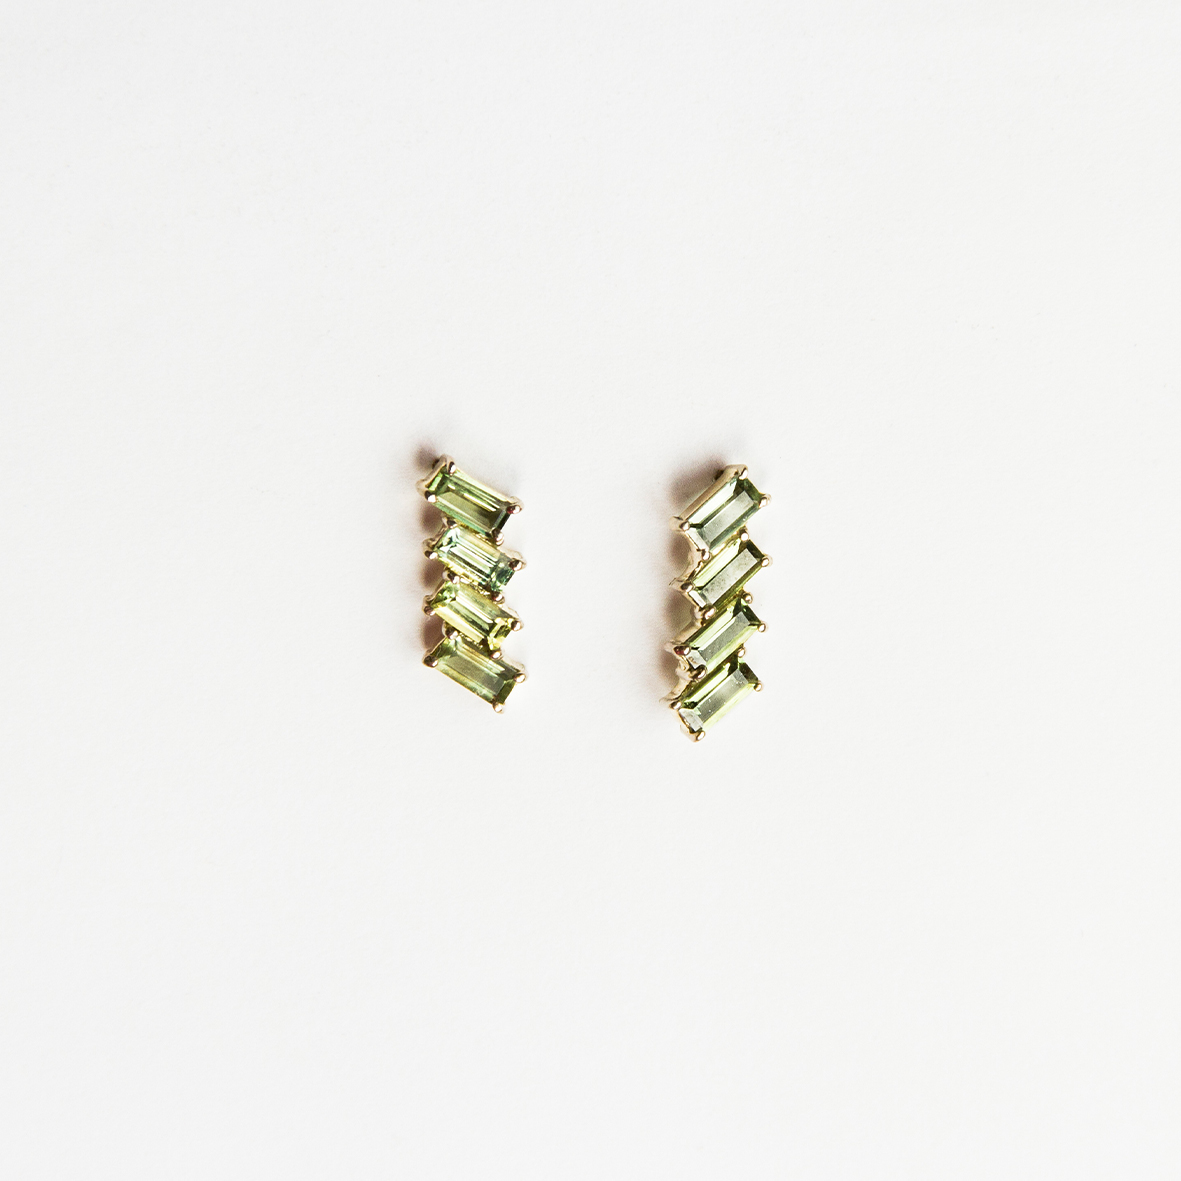 7. OONA_philo_ficha1_deco green sapphire earrings